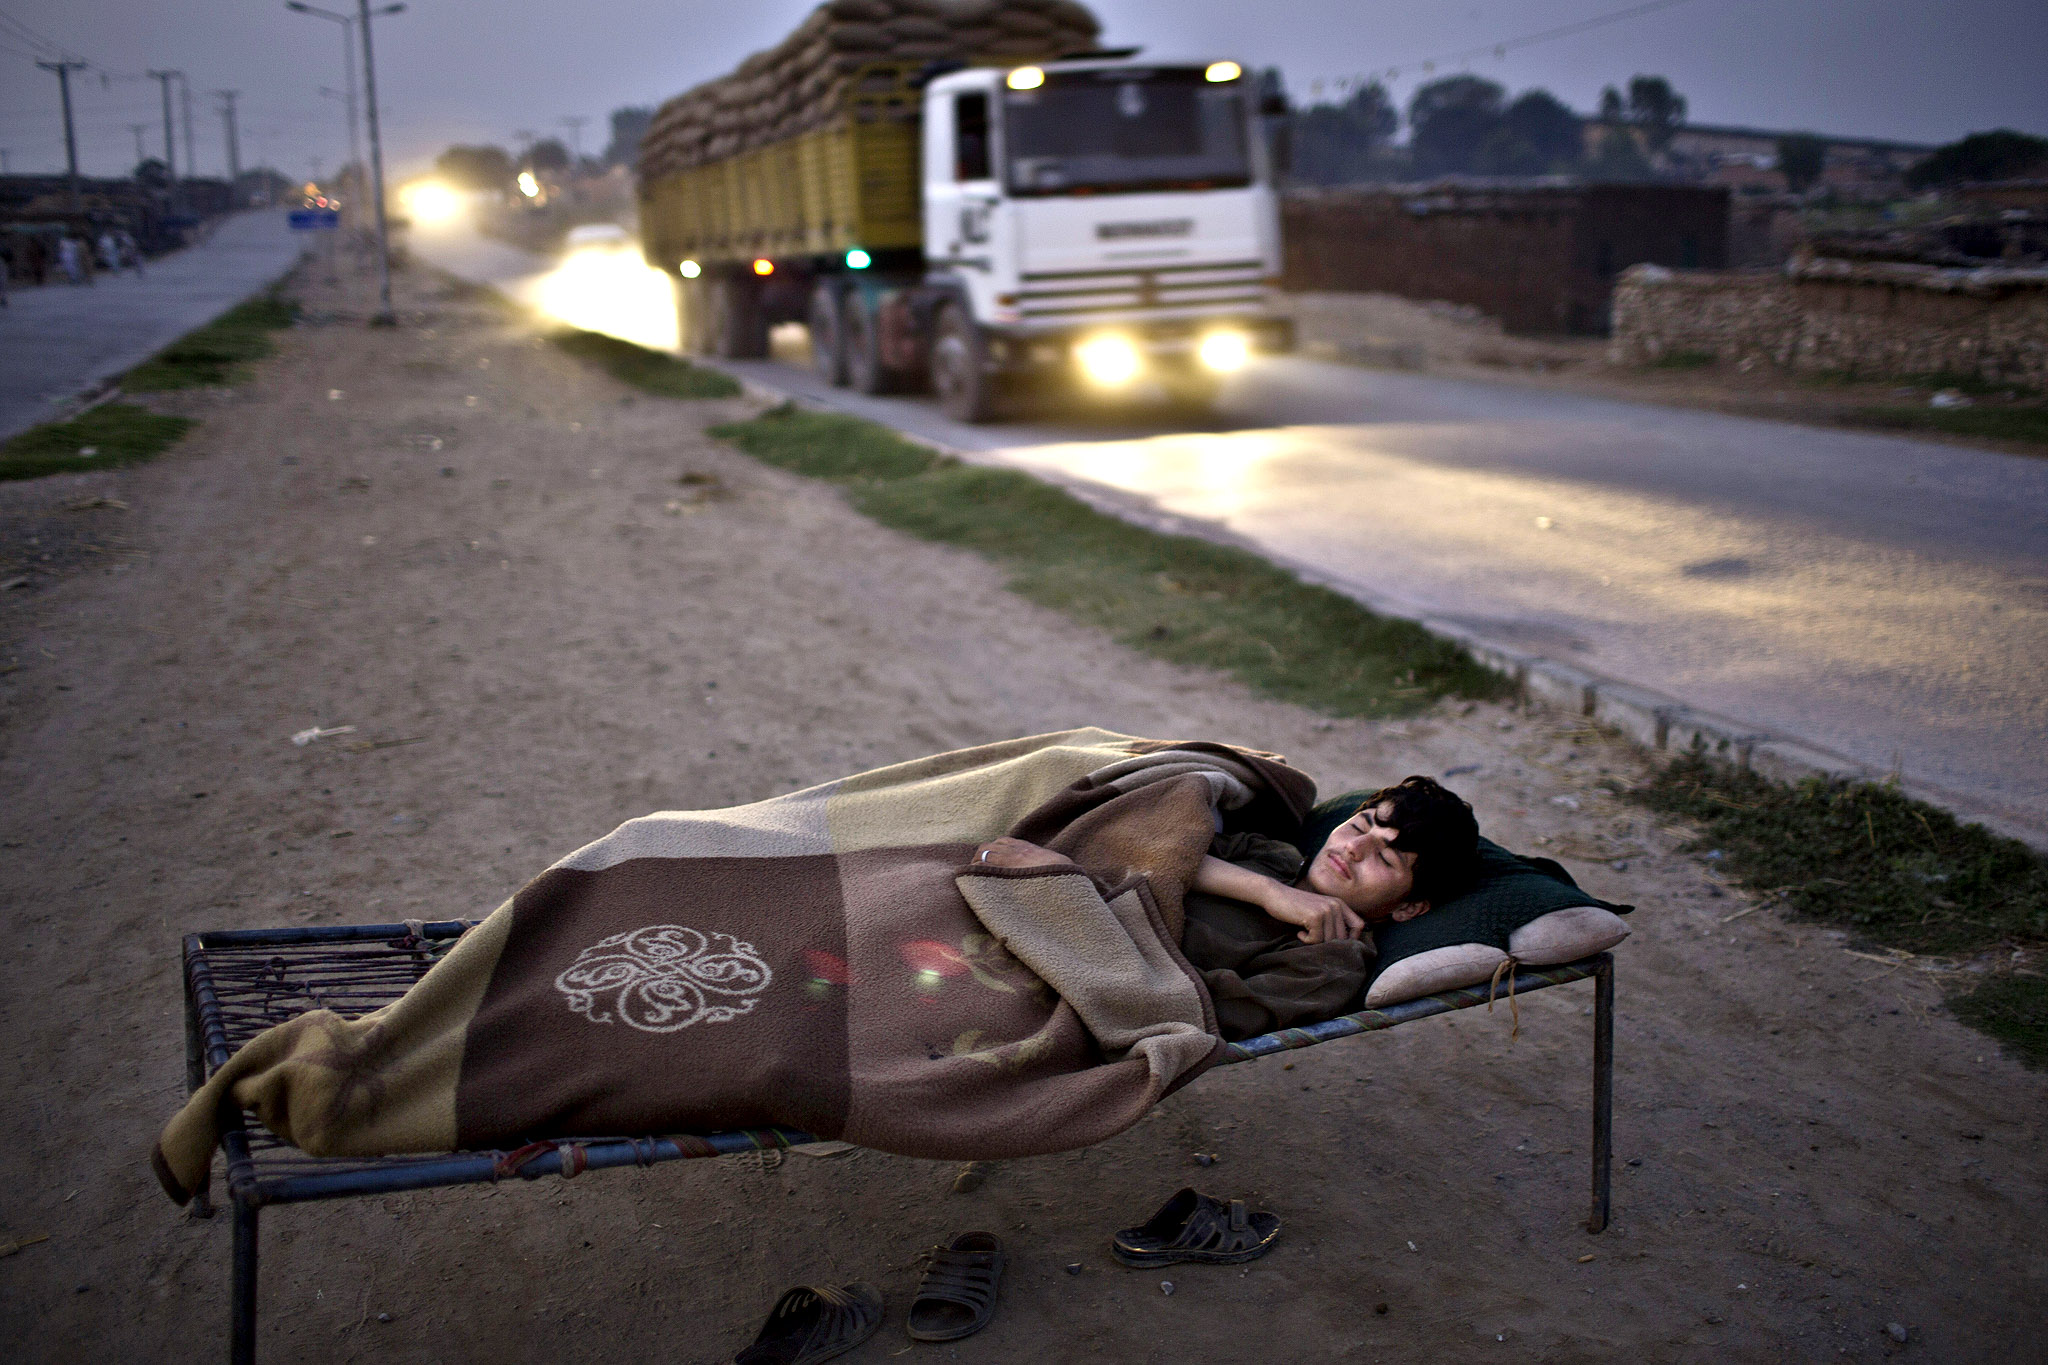 A Pakistani youth, who was Internally Displaced from Pakistan's tribal areas, sleeps on a bed to escape the heat trapped in his mud home, near a wholesale fruit and vegetable market where he works, on the outskirts of Islamabad, Pakistan, early Monday, Sept. 22, 2014.